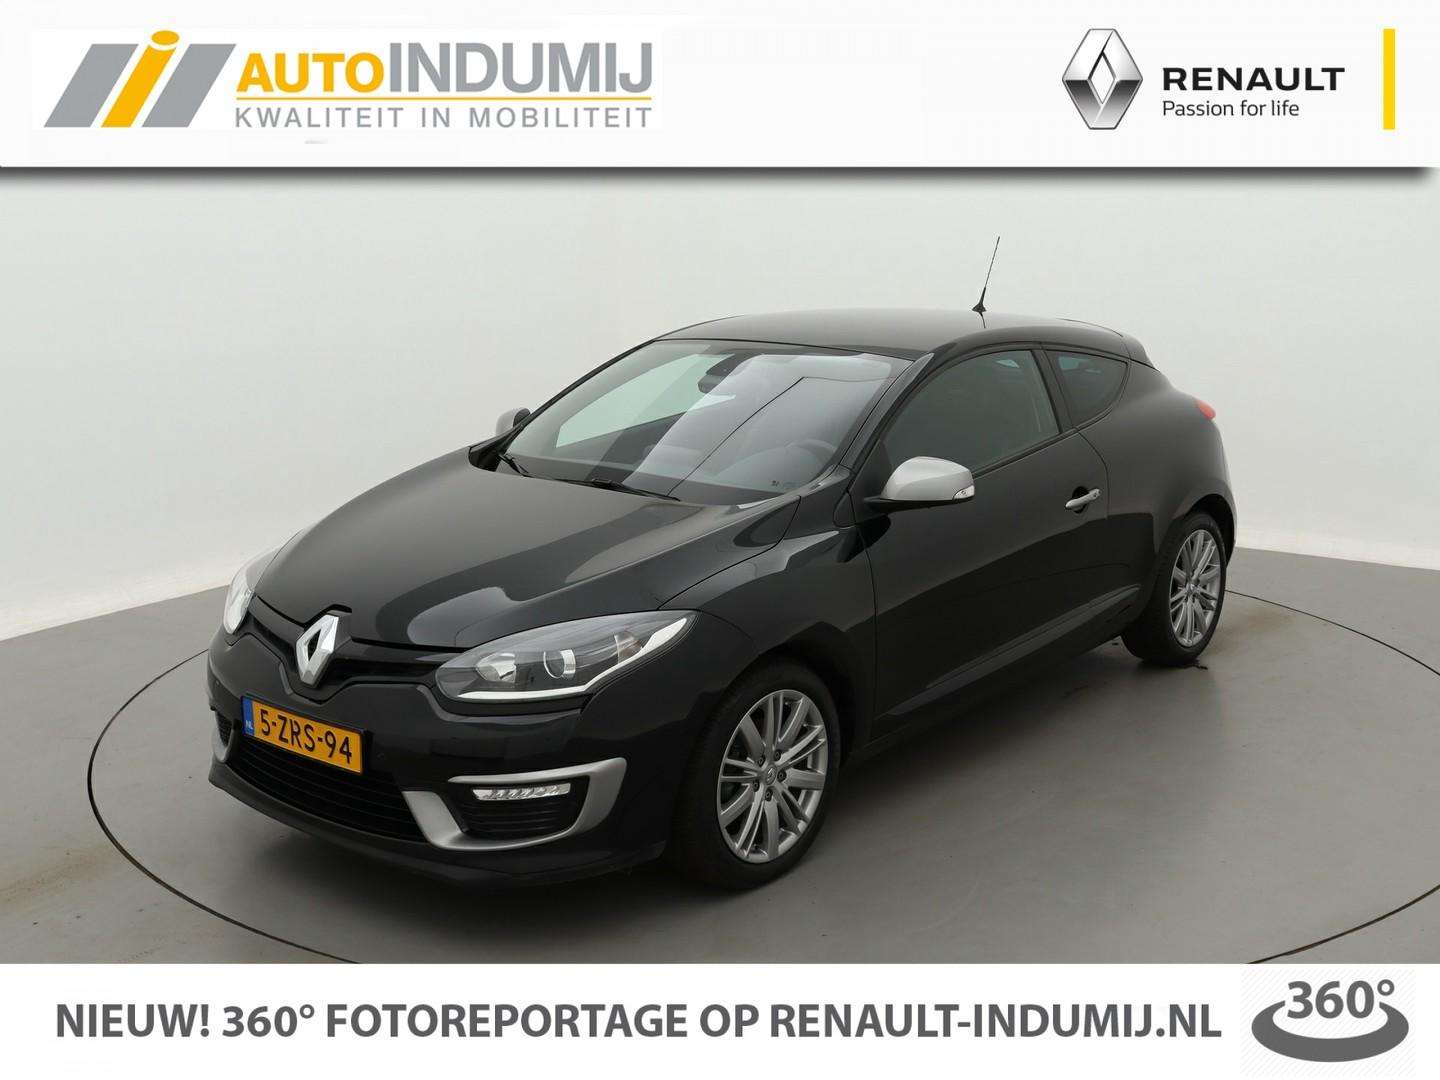 Renault Mégane Tce 130 gt-line / perfecte staat! // r-link navi / climate control / bluetooth